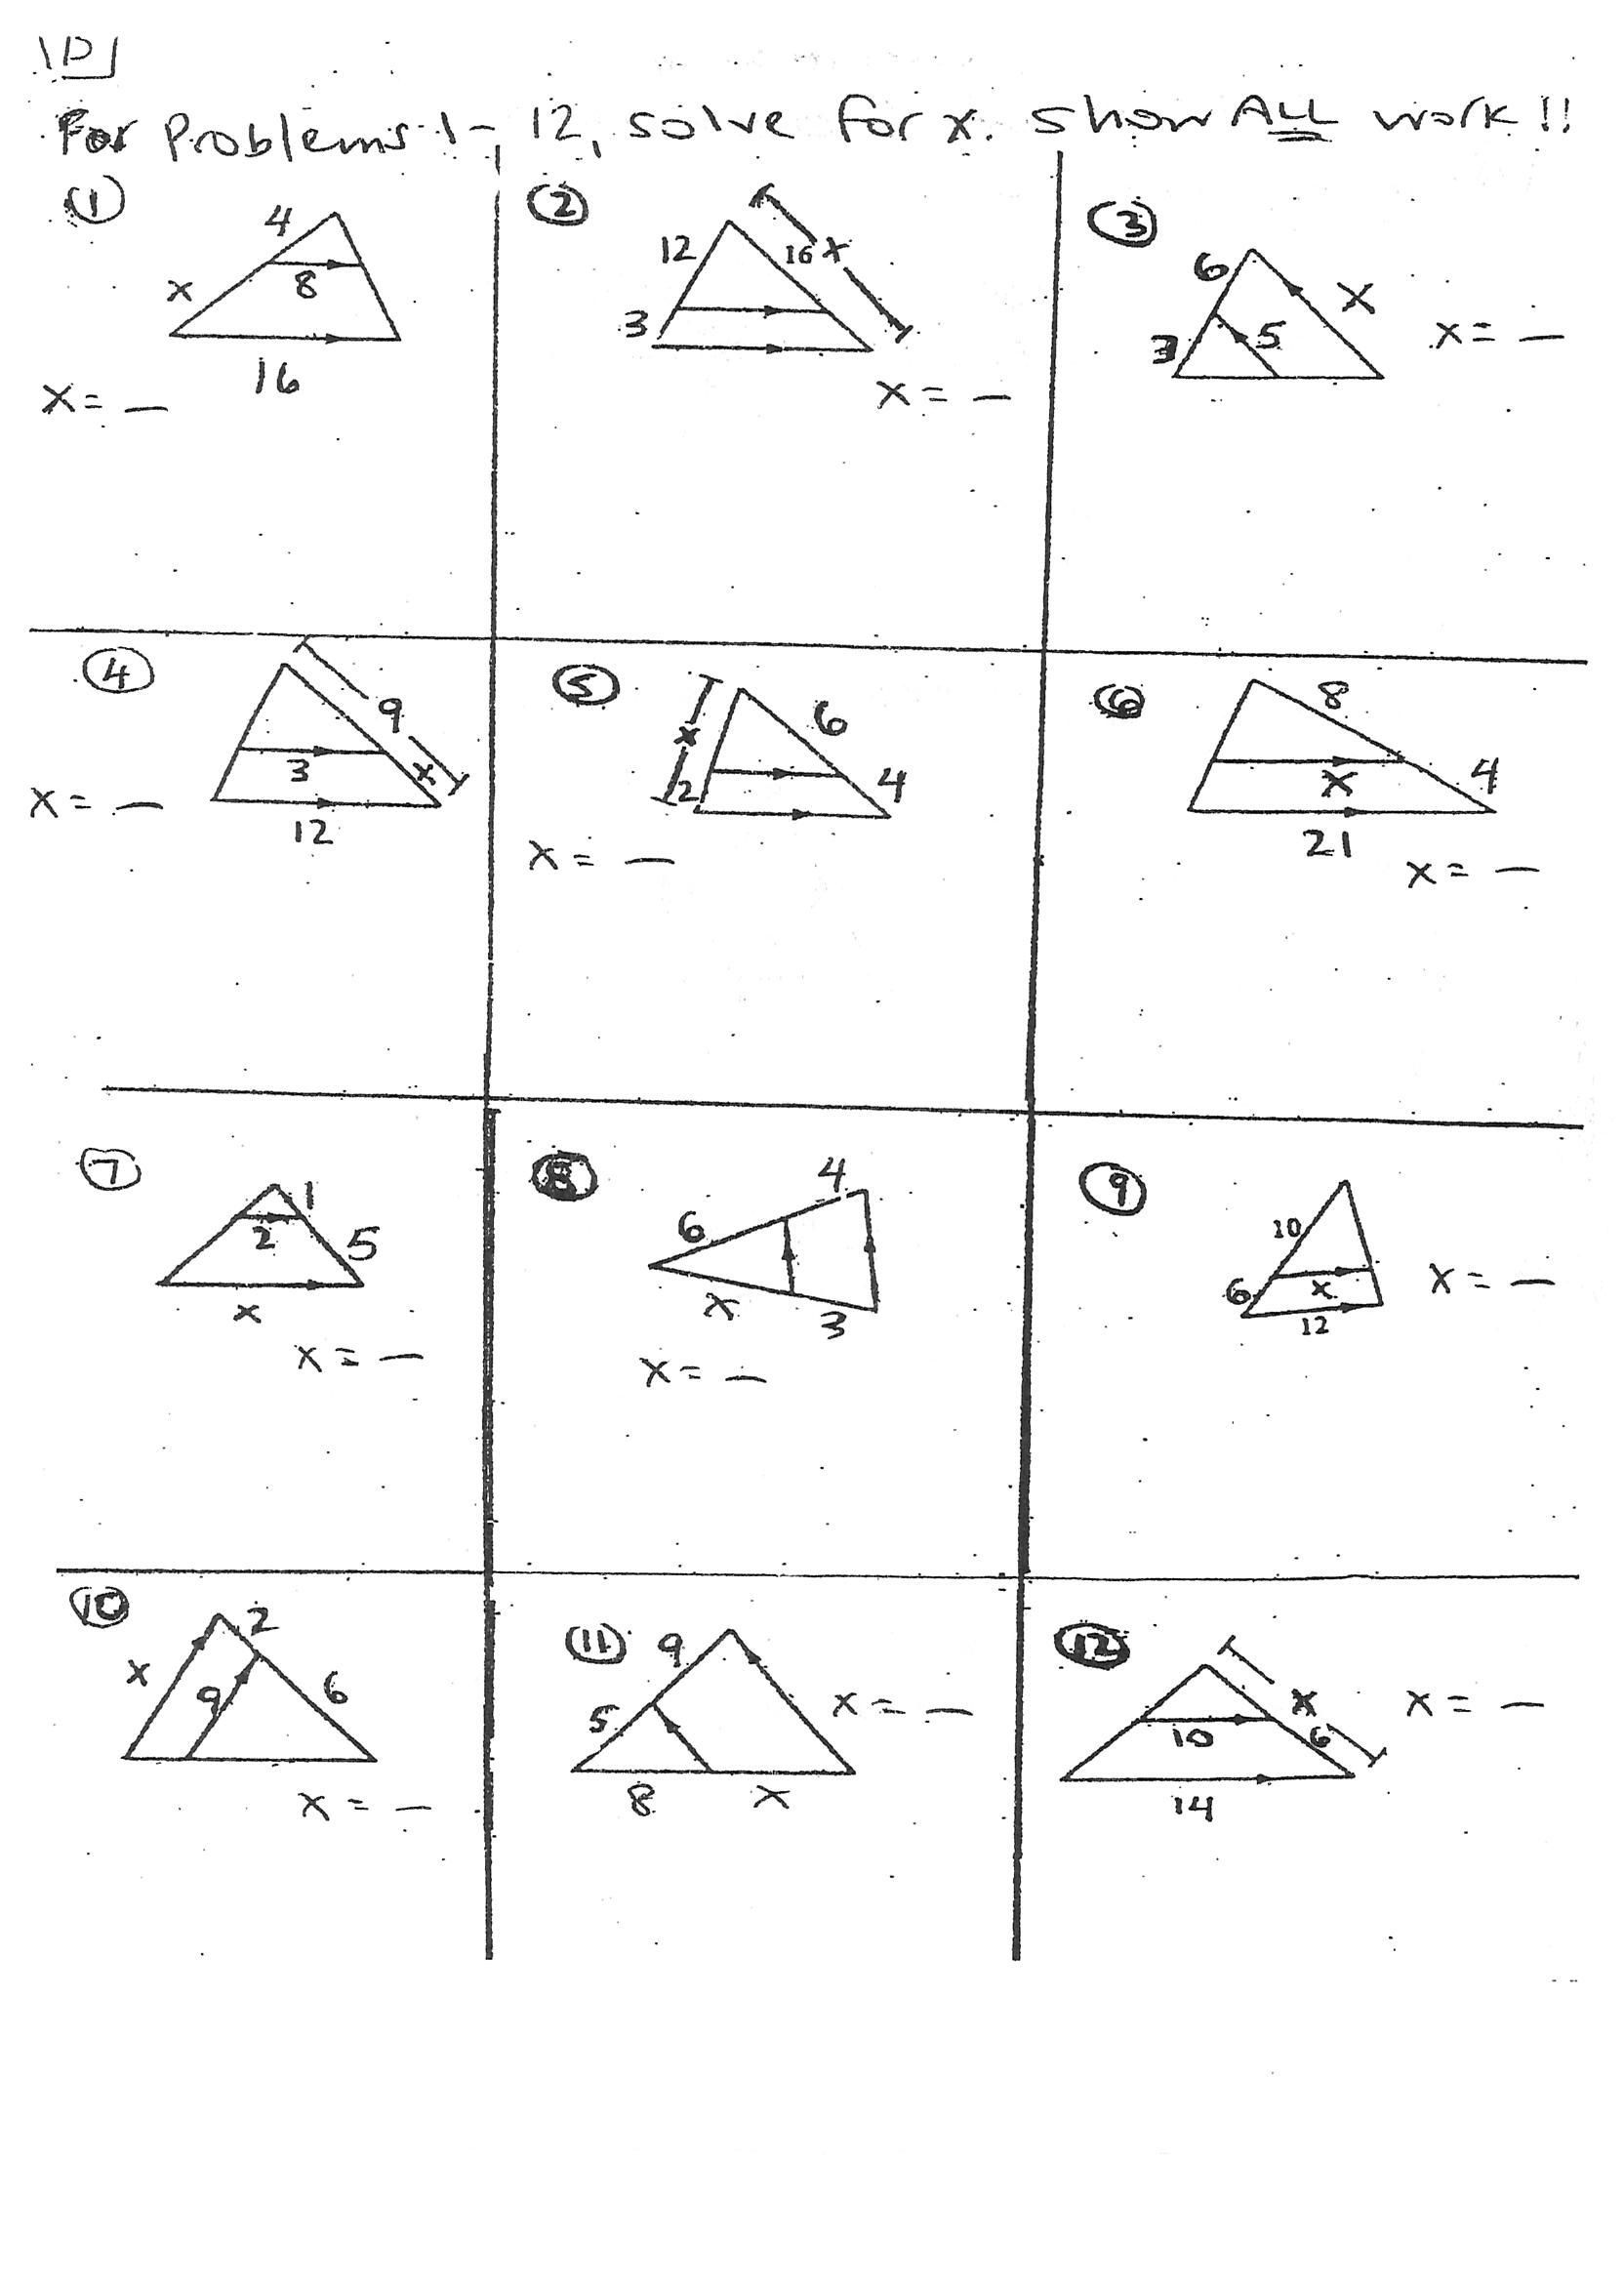 Congruent Triangles Worksheet with Answers Image Result for Triangle Midsegments Worksheet